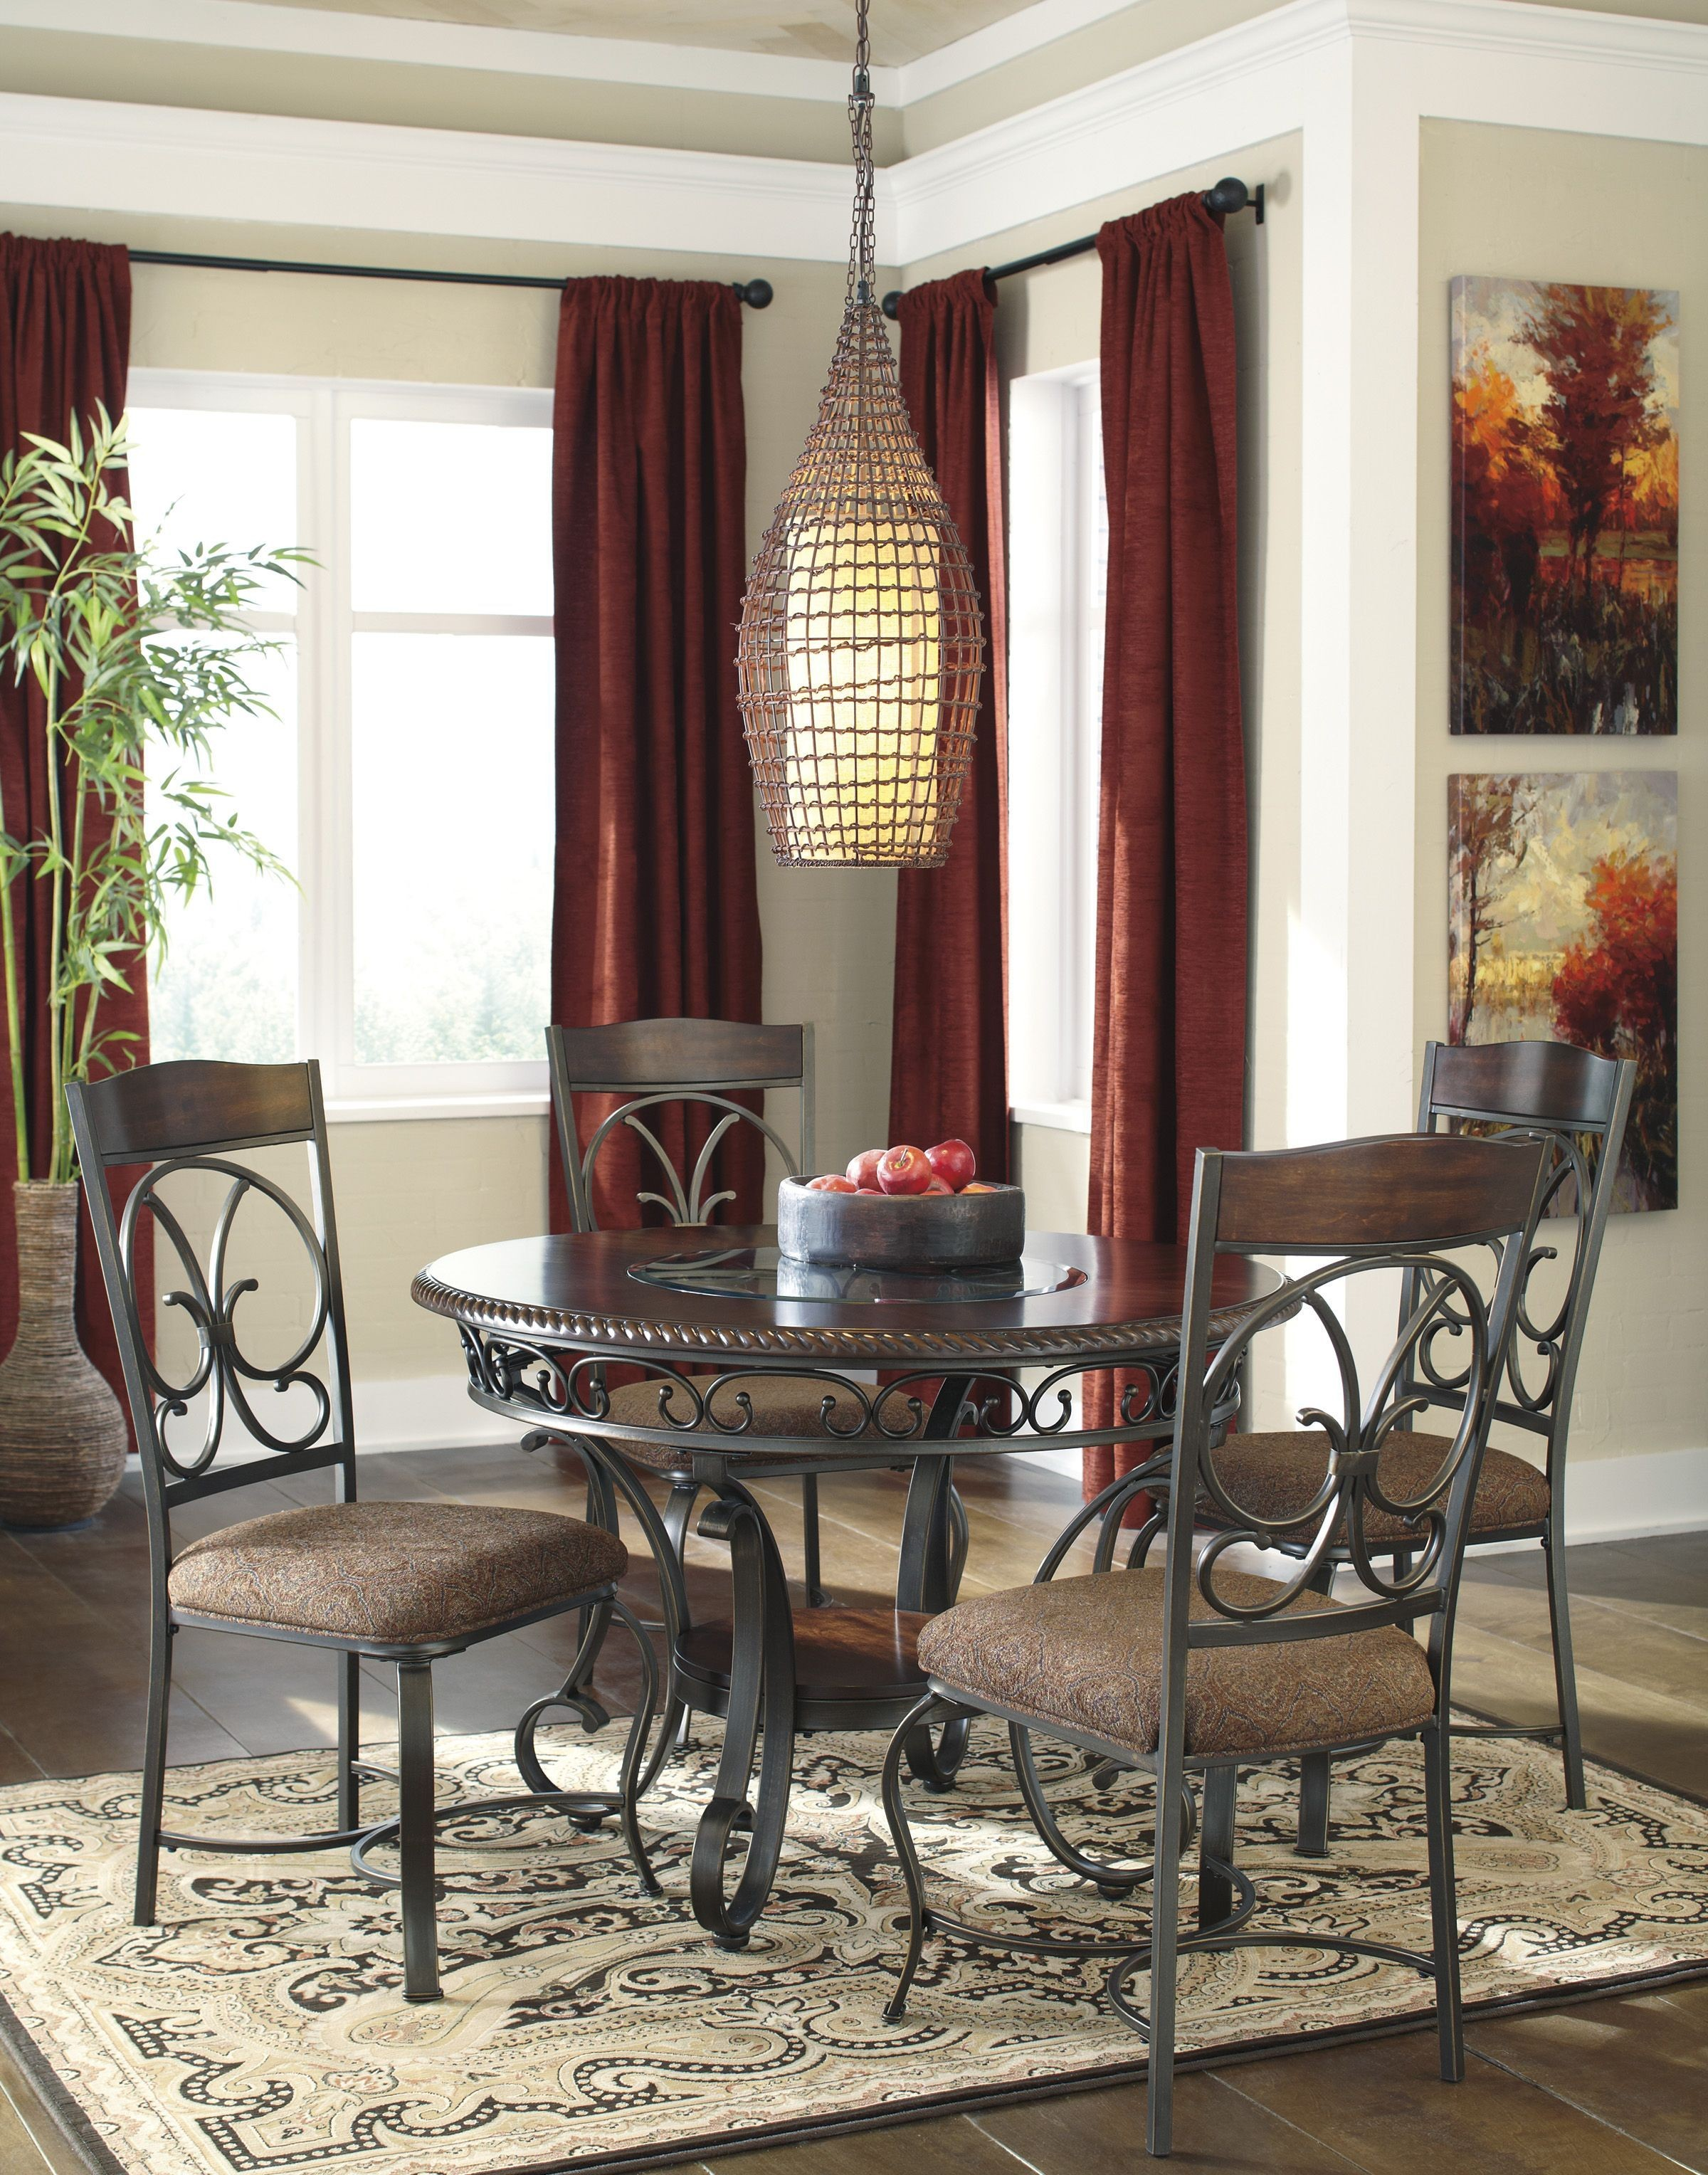 ashley dining room sets glambrey round dining room set from ashley d329 15 coleman furniture 1348